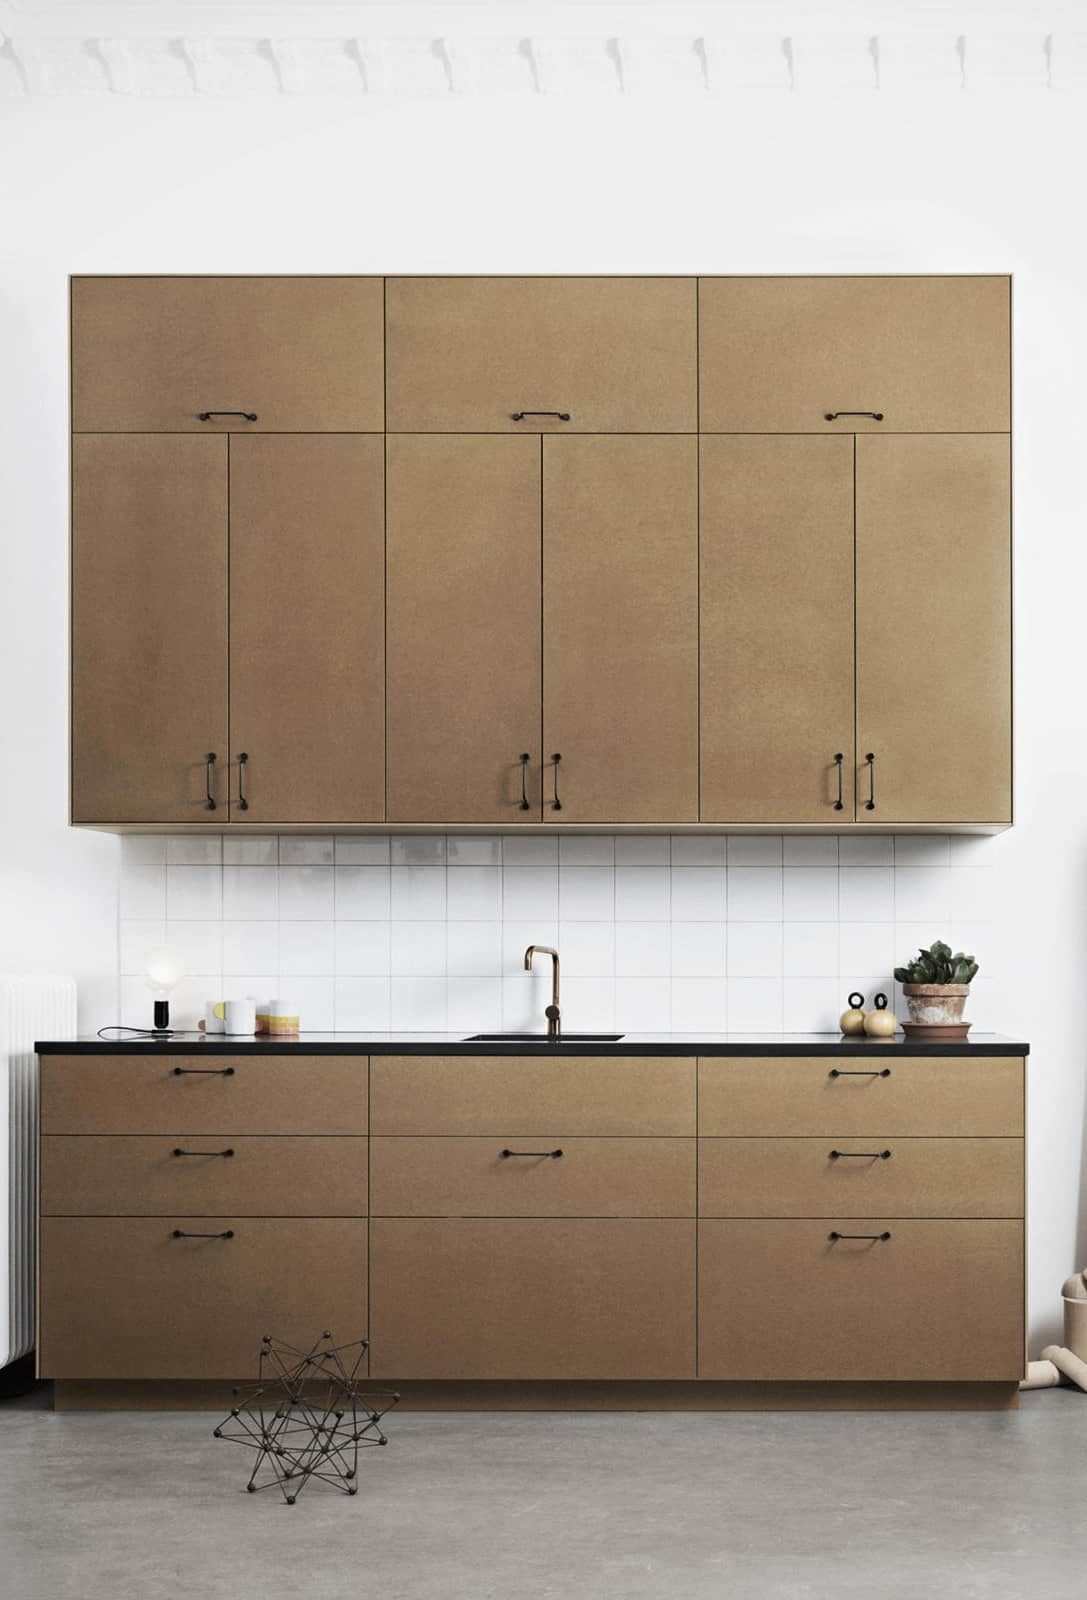 How To Customize Ikea Kitchen Cabinets No Carpenter Required Ikea Kitchen Cabinets New Kitchen Cabinets Ikea Kitchen